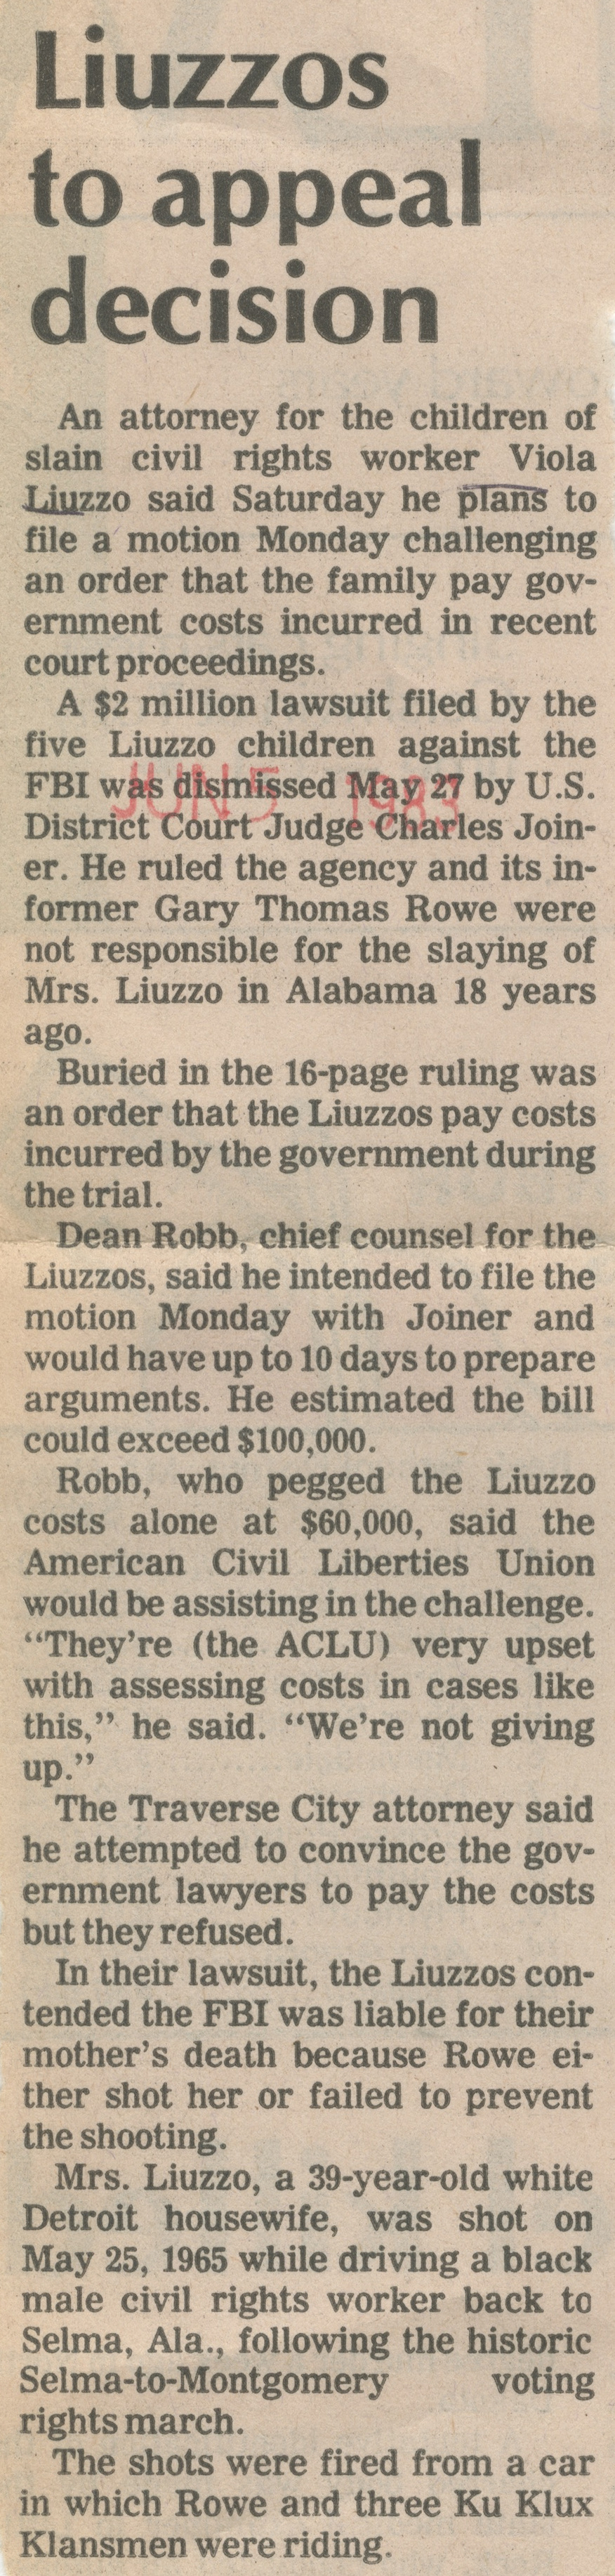 Liuzzos To Appeal Decision image